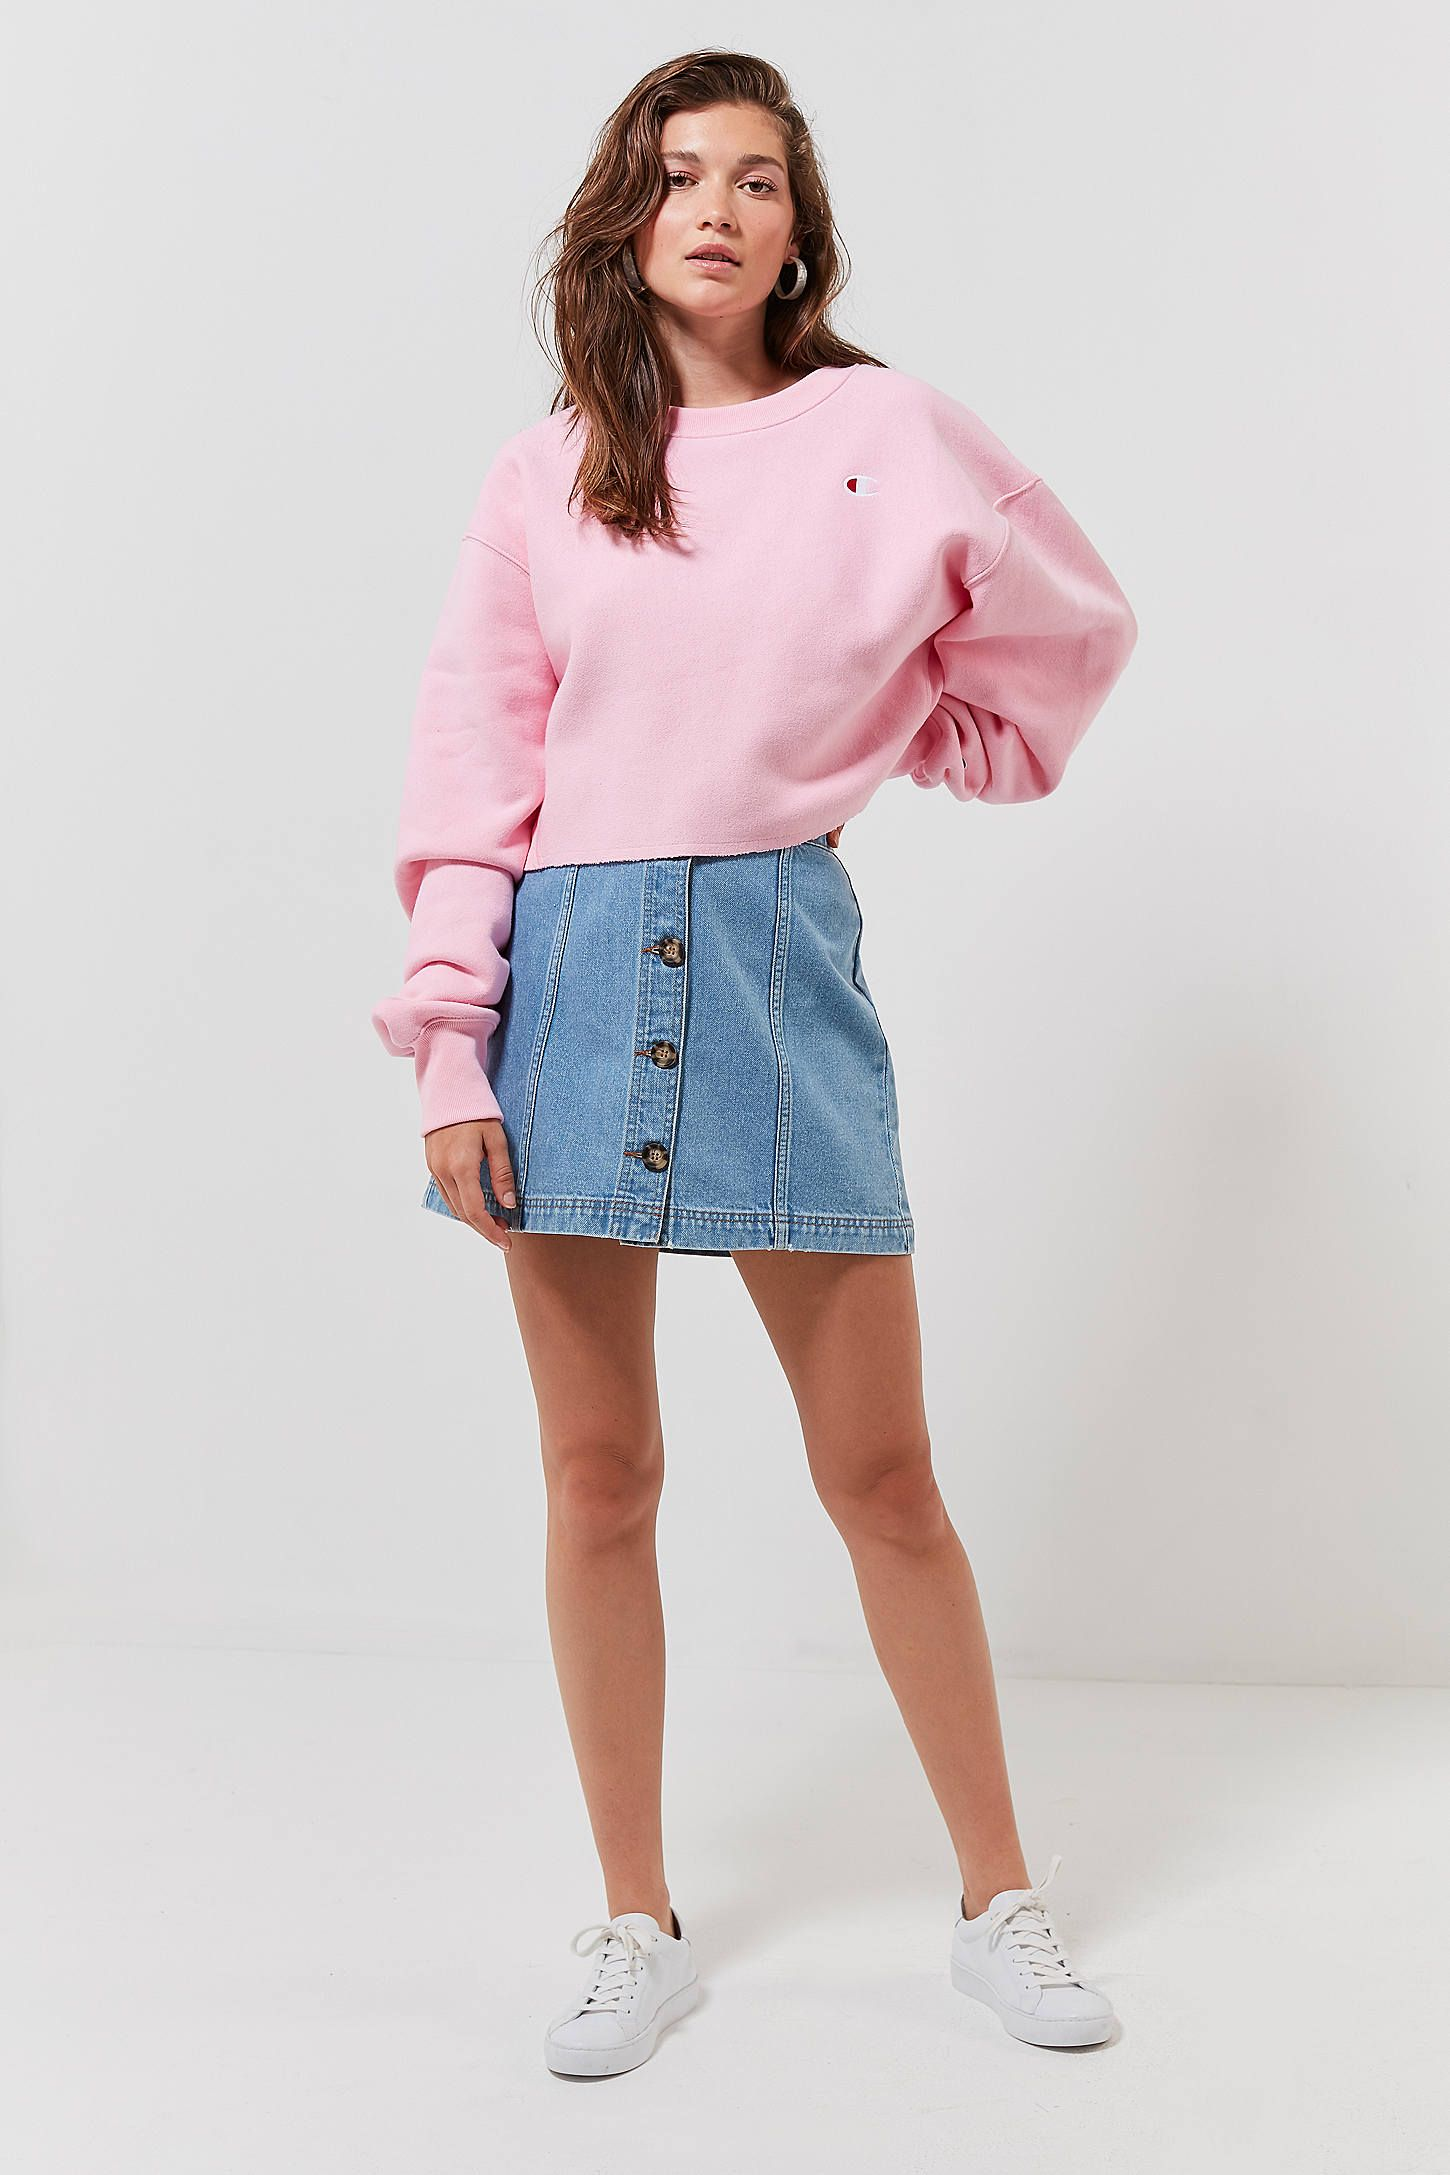 Champion Crew Neck Cropped Sweatshirt Cropped Sweatshirt Outfit Crop Sweatshirt Pink Sweatshirt Outfit [ 2175 x 1450 Pixel ]